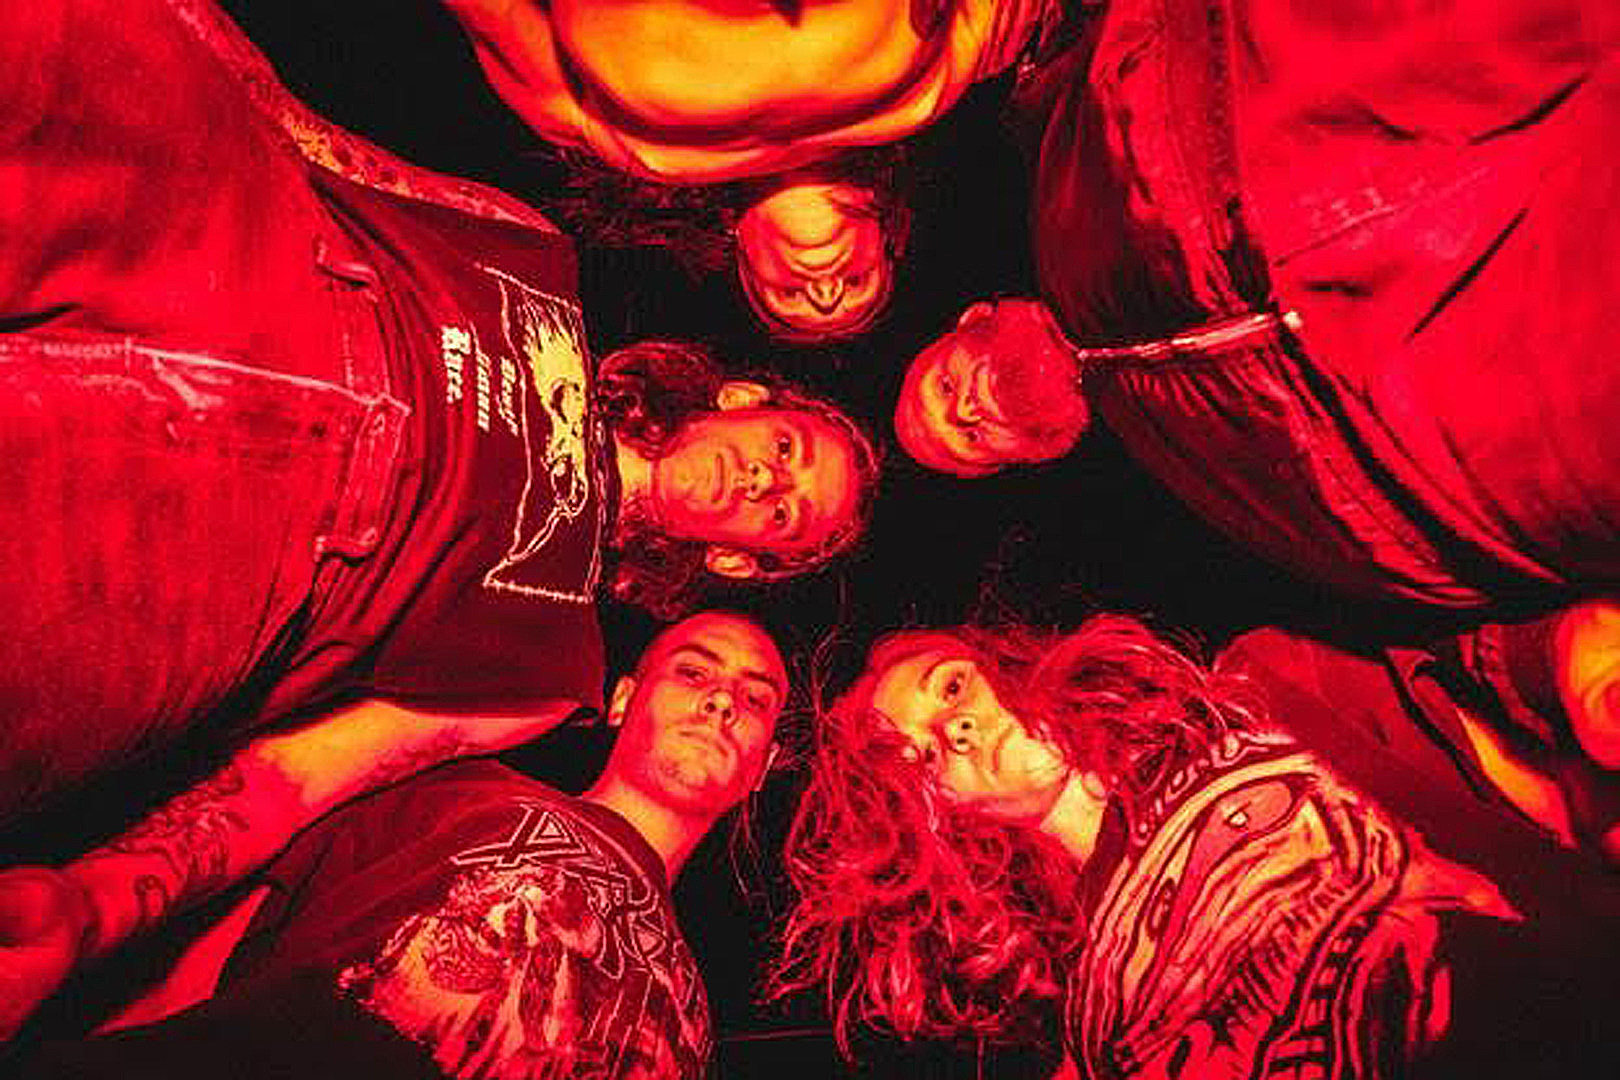 Corey Taylor Featured on New Code Orange Song 'The Hunt'—Listen